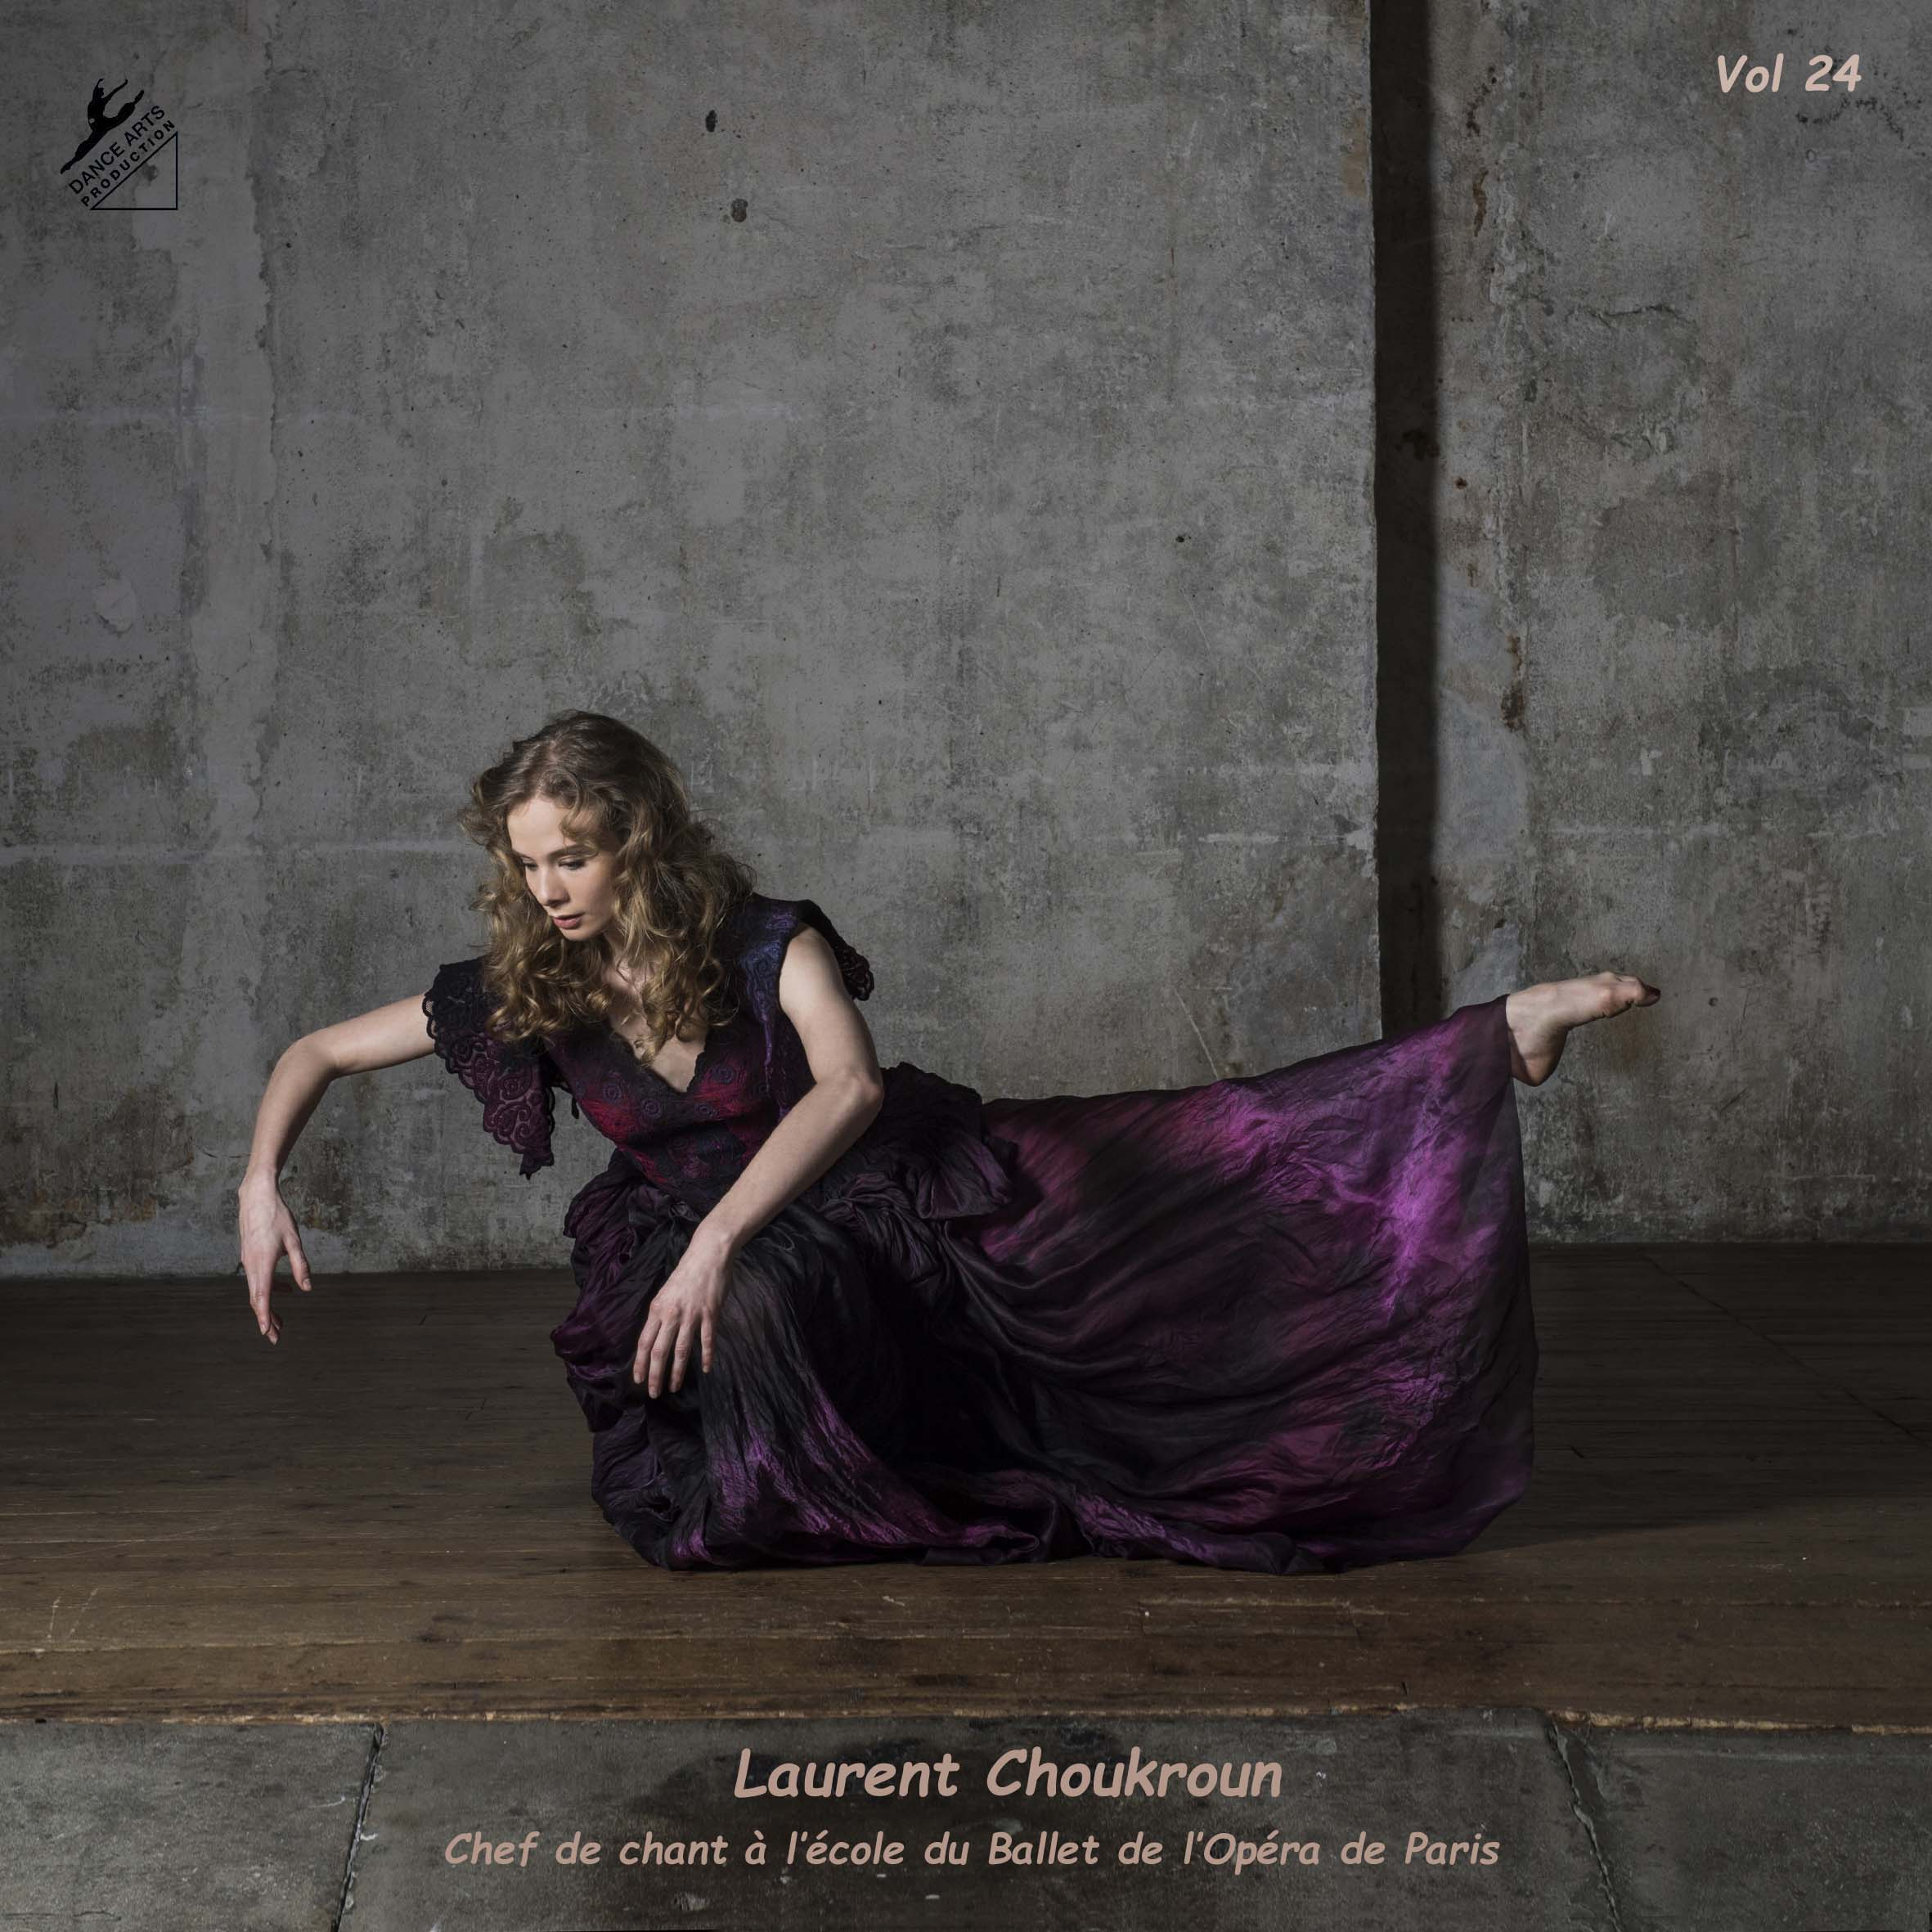 Nouveau cd vol 24 Laurent Choukroun